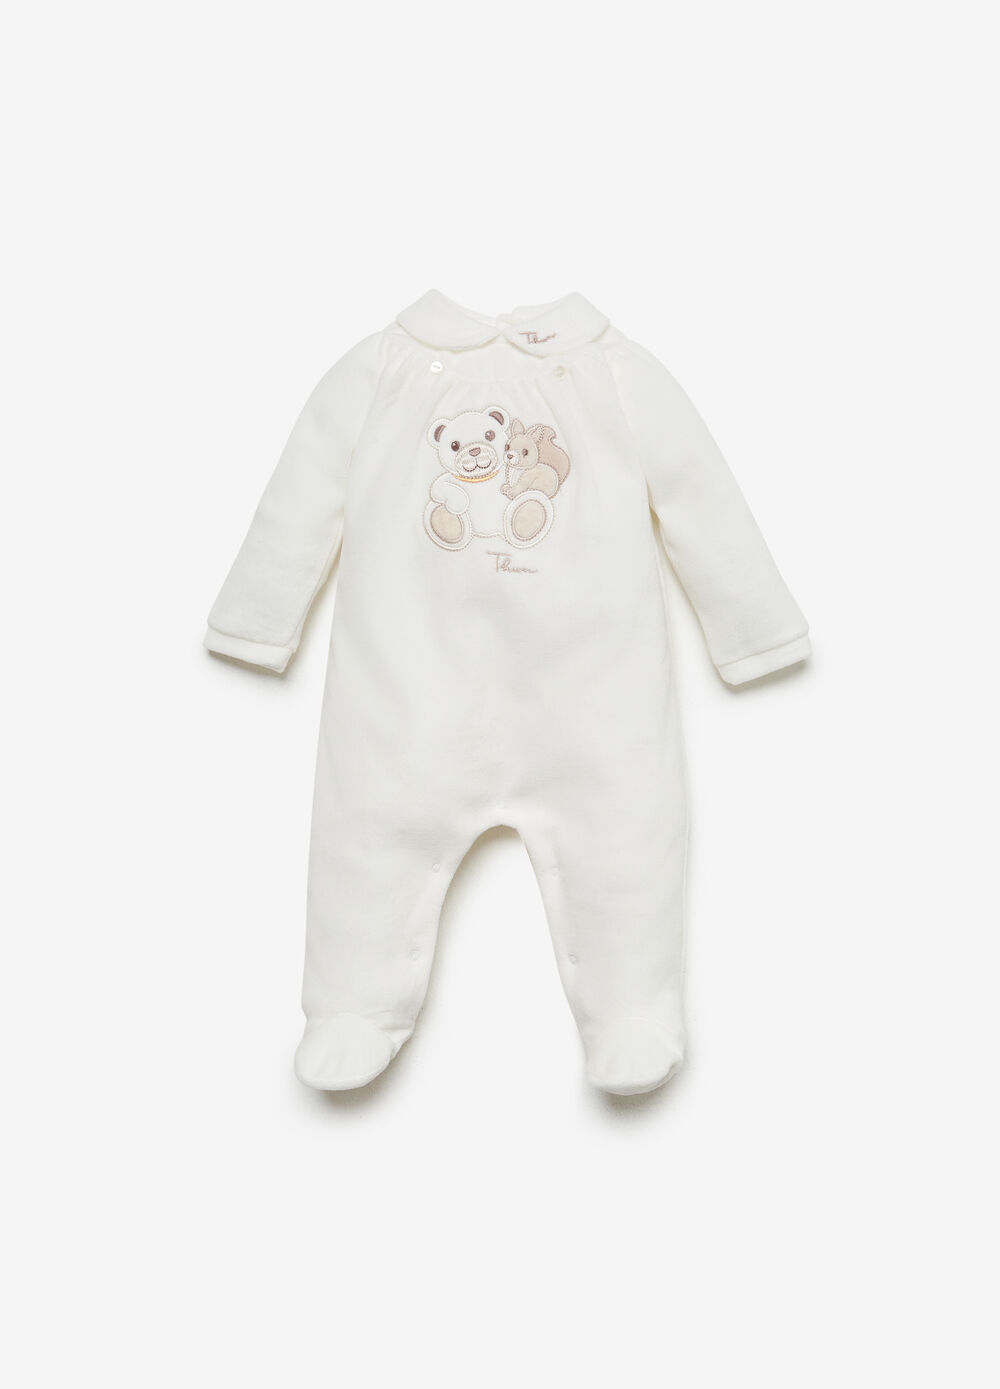 THUN Teddy cotton blend romper suit